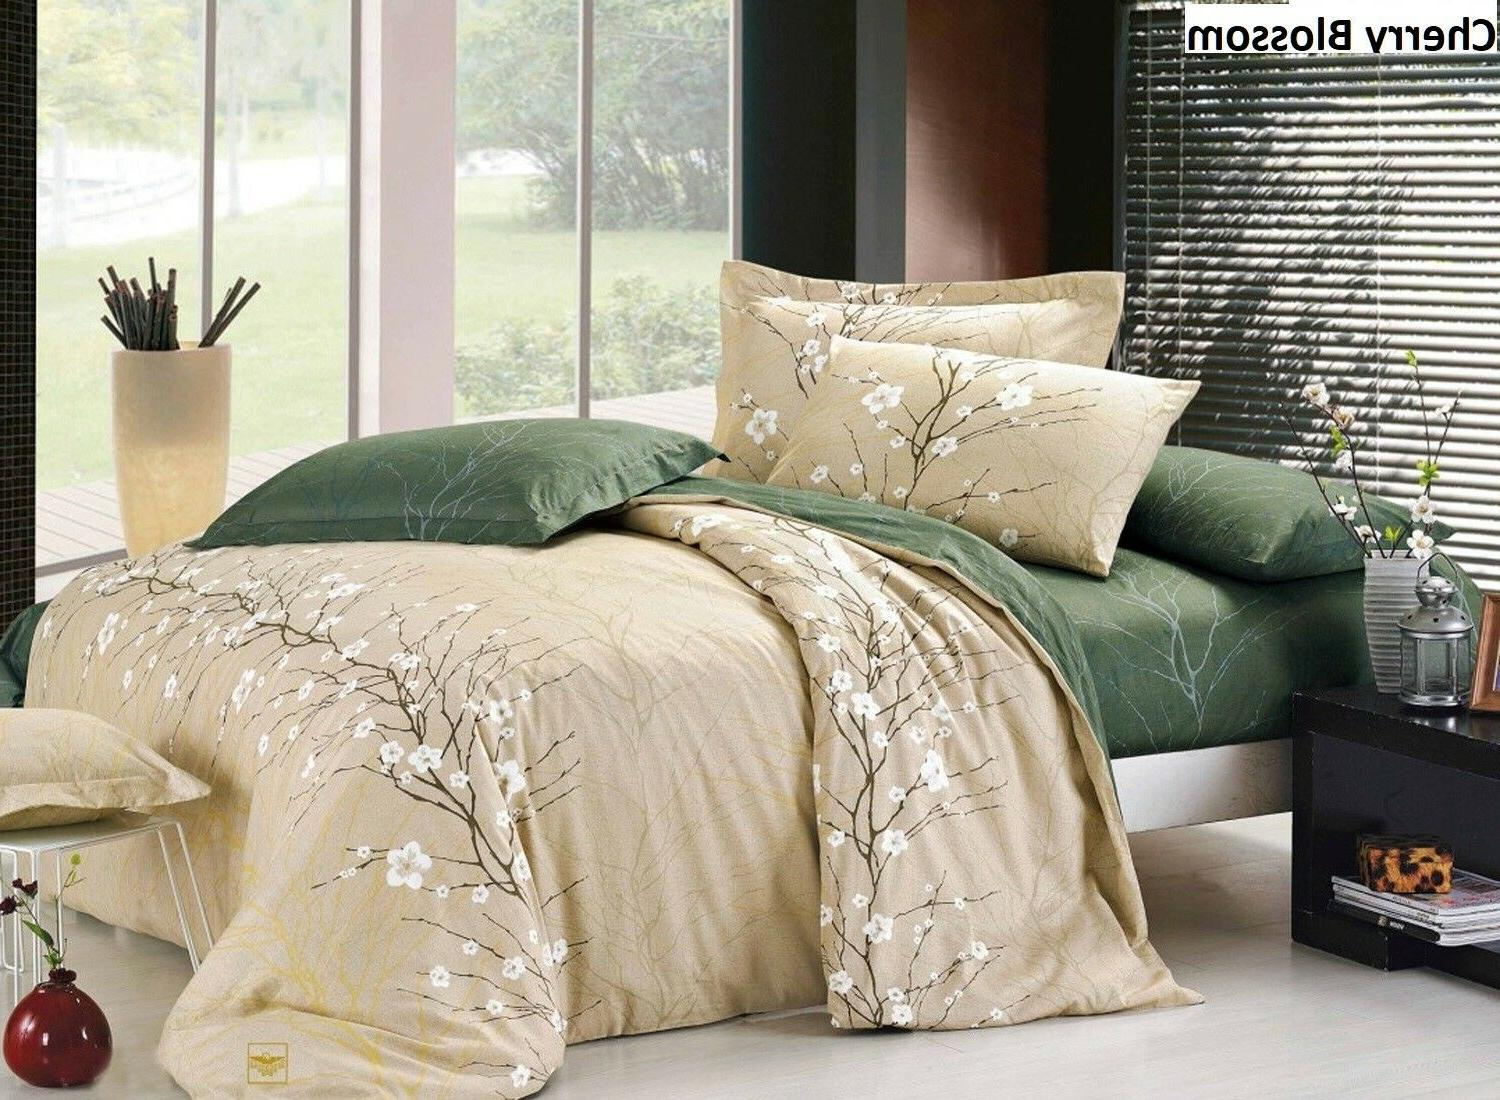 duvet set: cotton: queen or